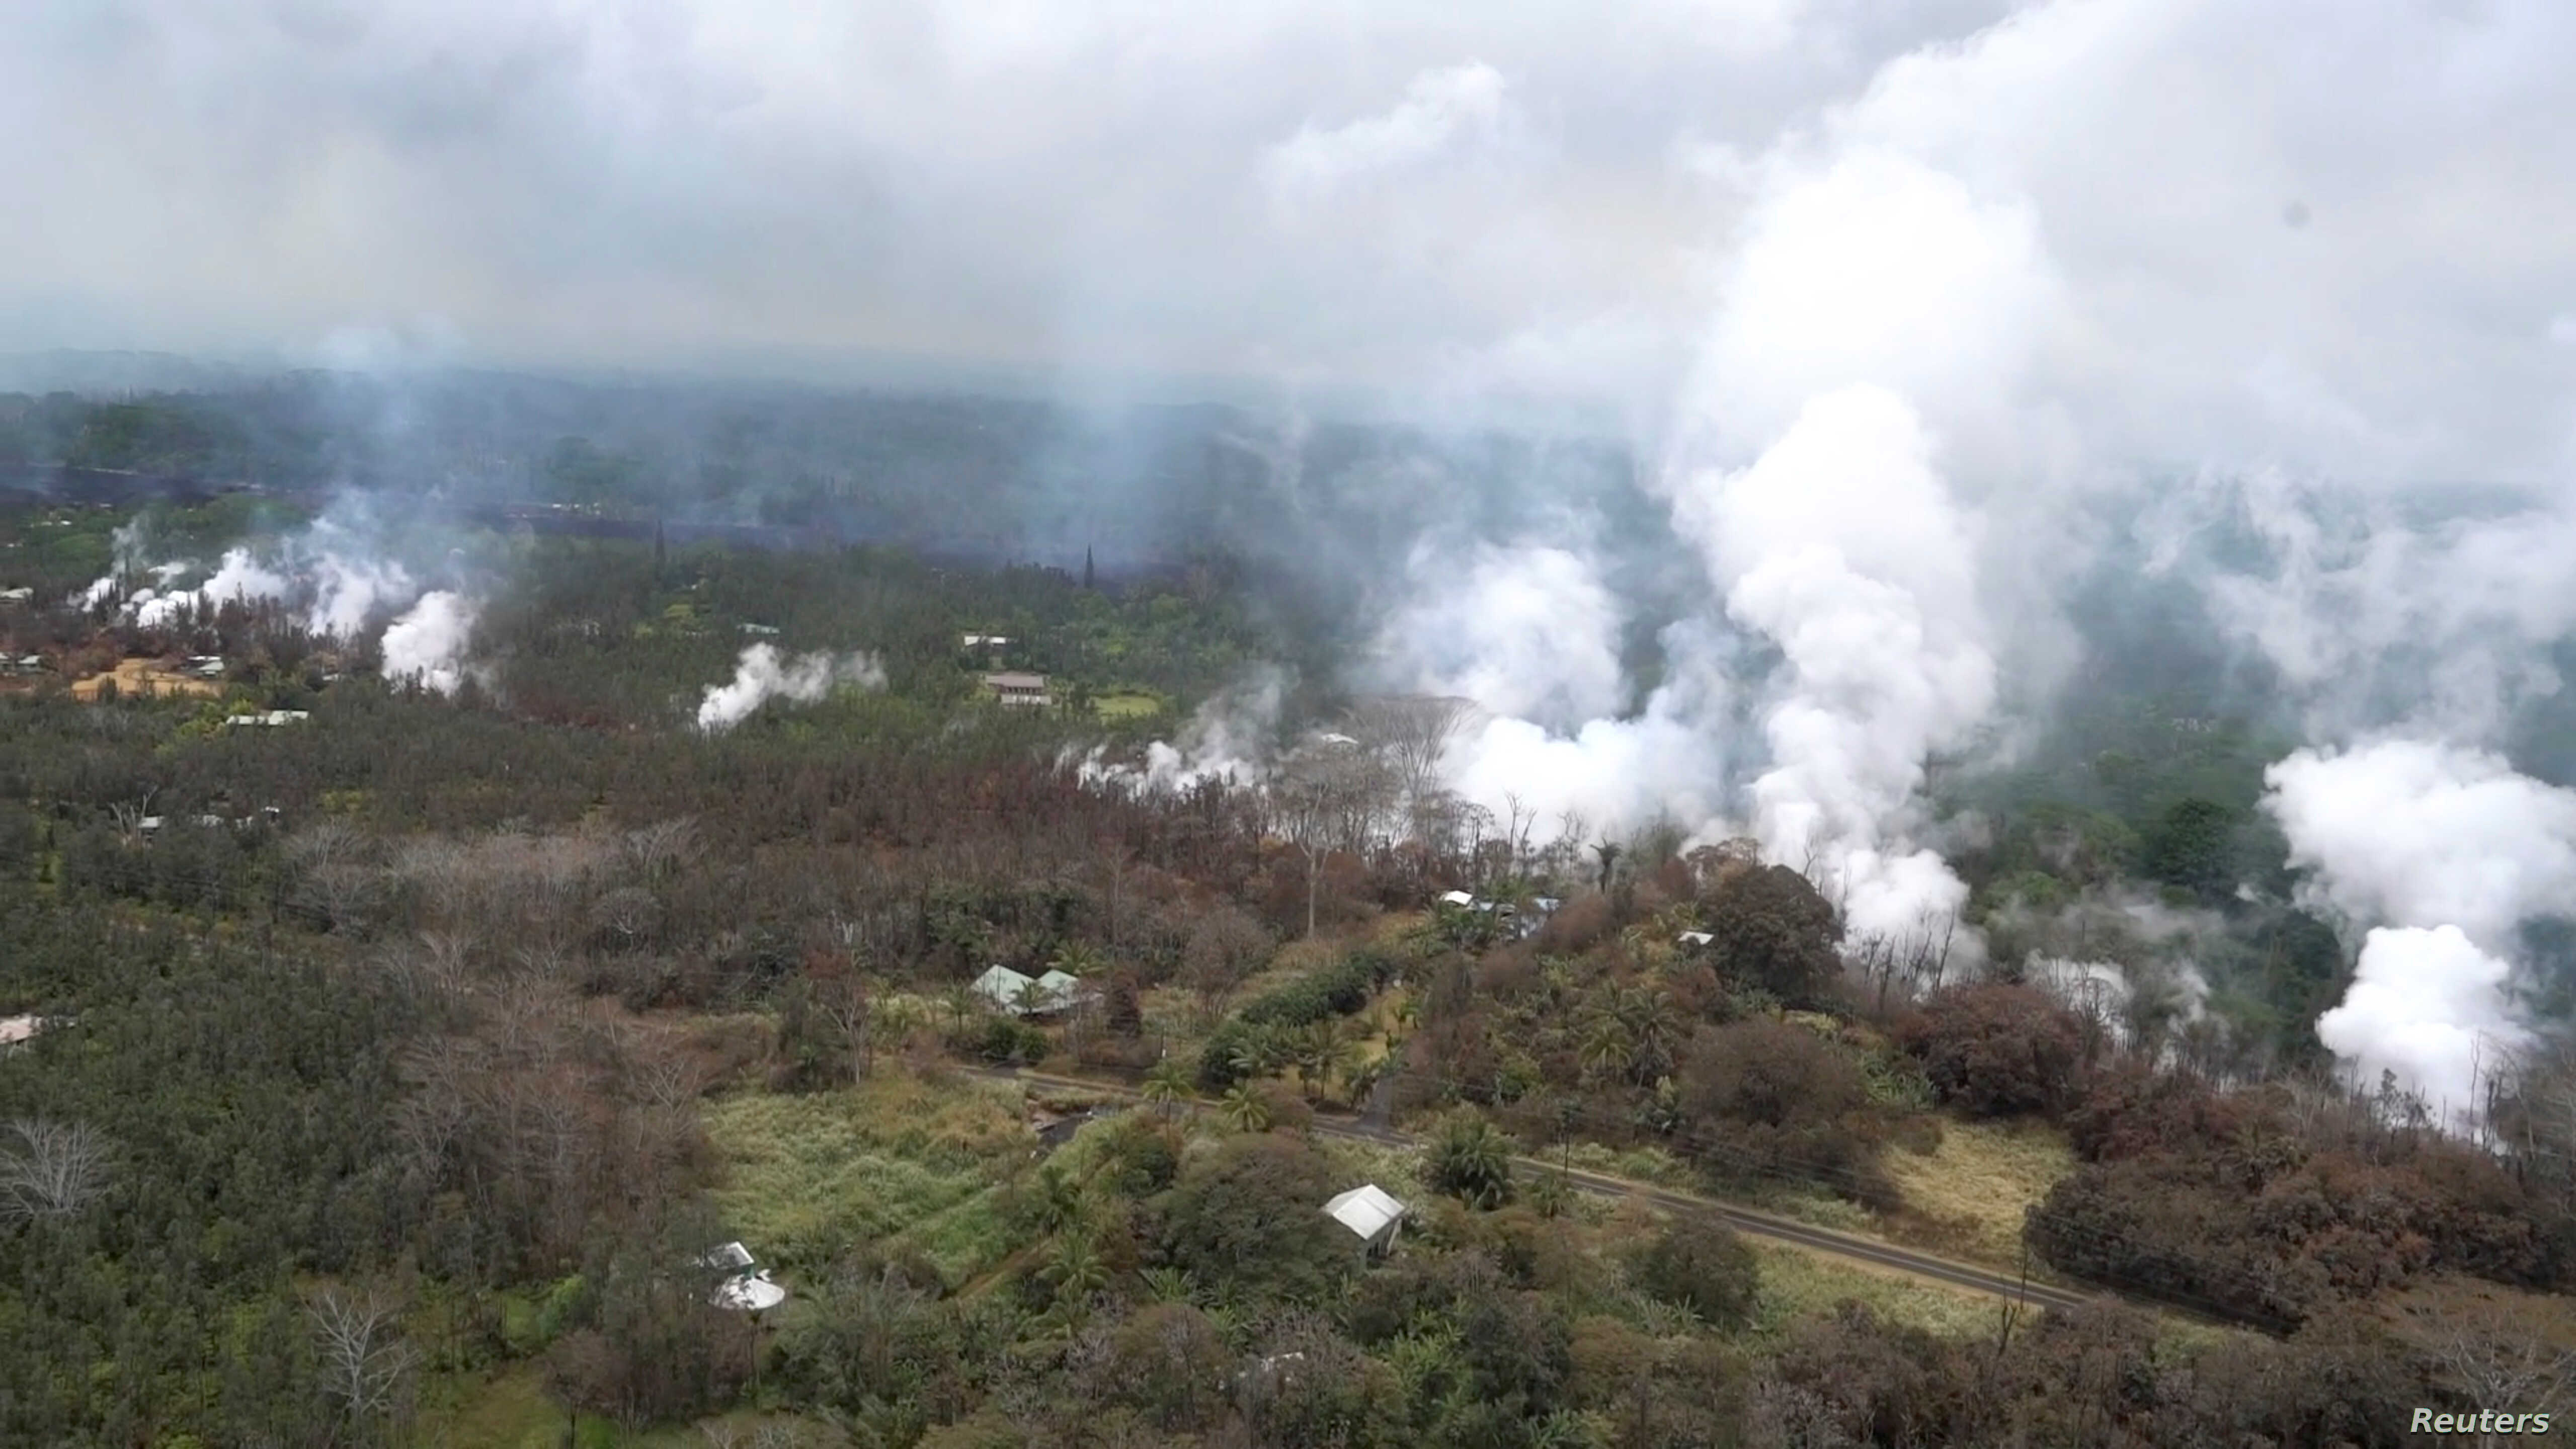 Molten rock flows and burst to the surface, threatening homes in a rural area in this still image from an aerial video taken from a Hawaii Army National Guard a week after the eruption of the Kilauea volcano, in Pahoa, Hawaii, May 10, 2018.